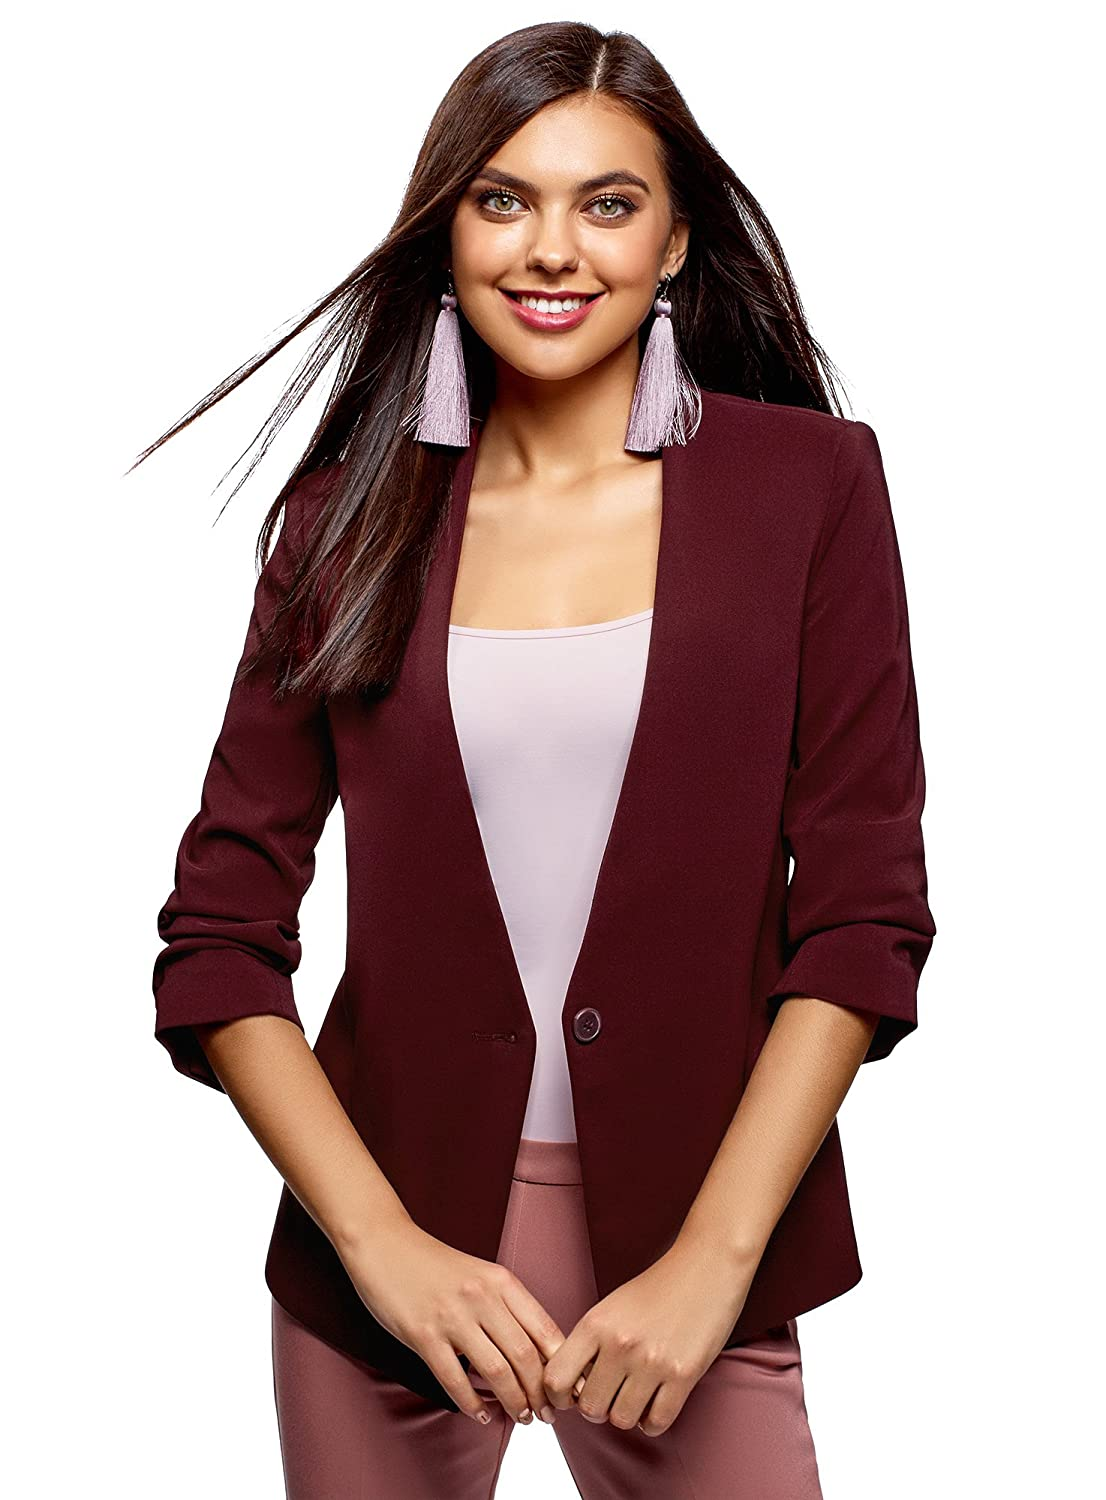 oodji Ultra Womens Slim-Fit Blazer with 3/4 Sleeves RIFICZECH s.r.o. 11204014B